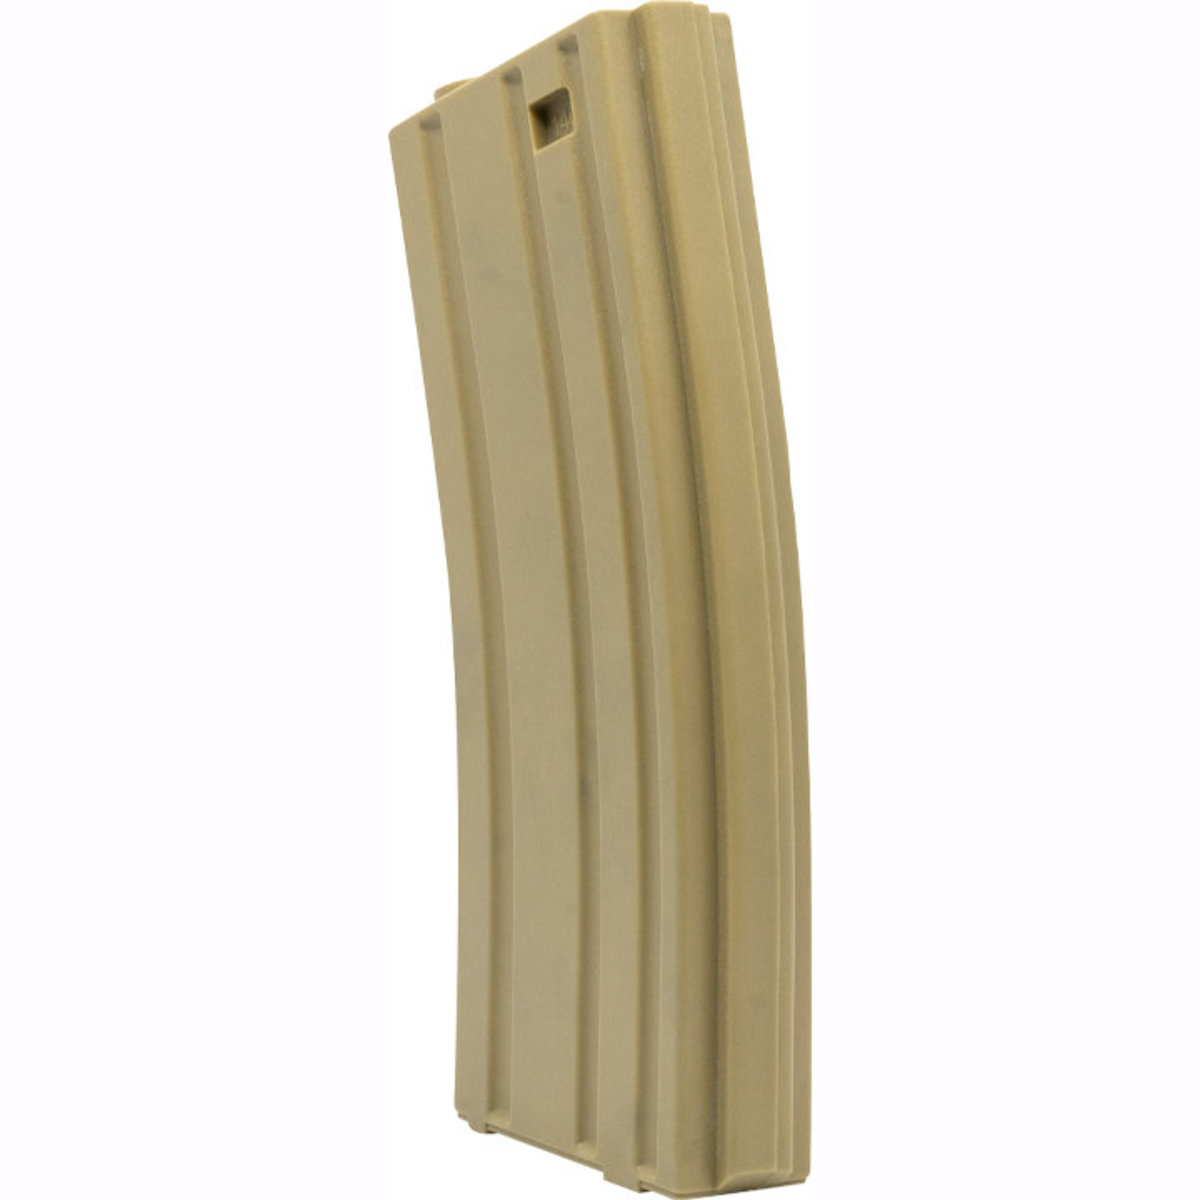 View larger image of Valken 140rd SMAG Mid-Cap Airsoft Magazines - 5 Pack